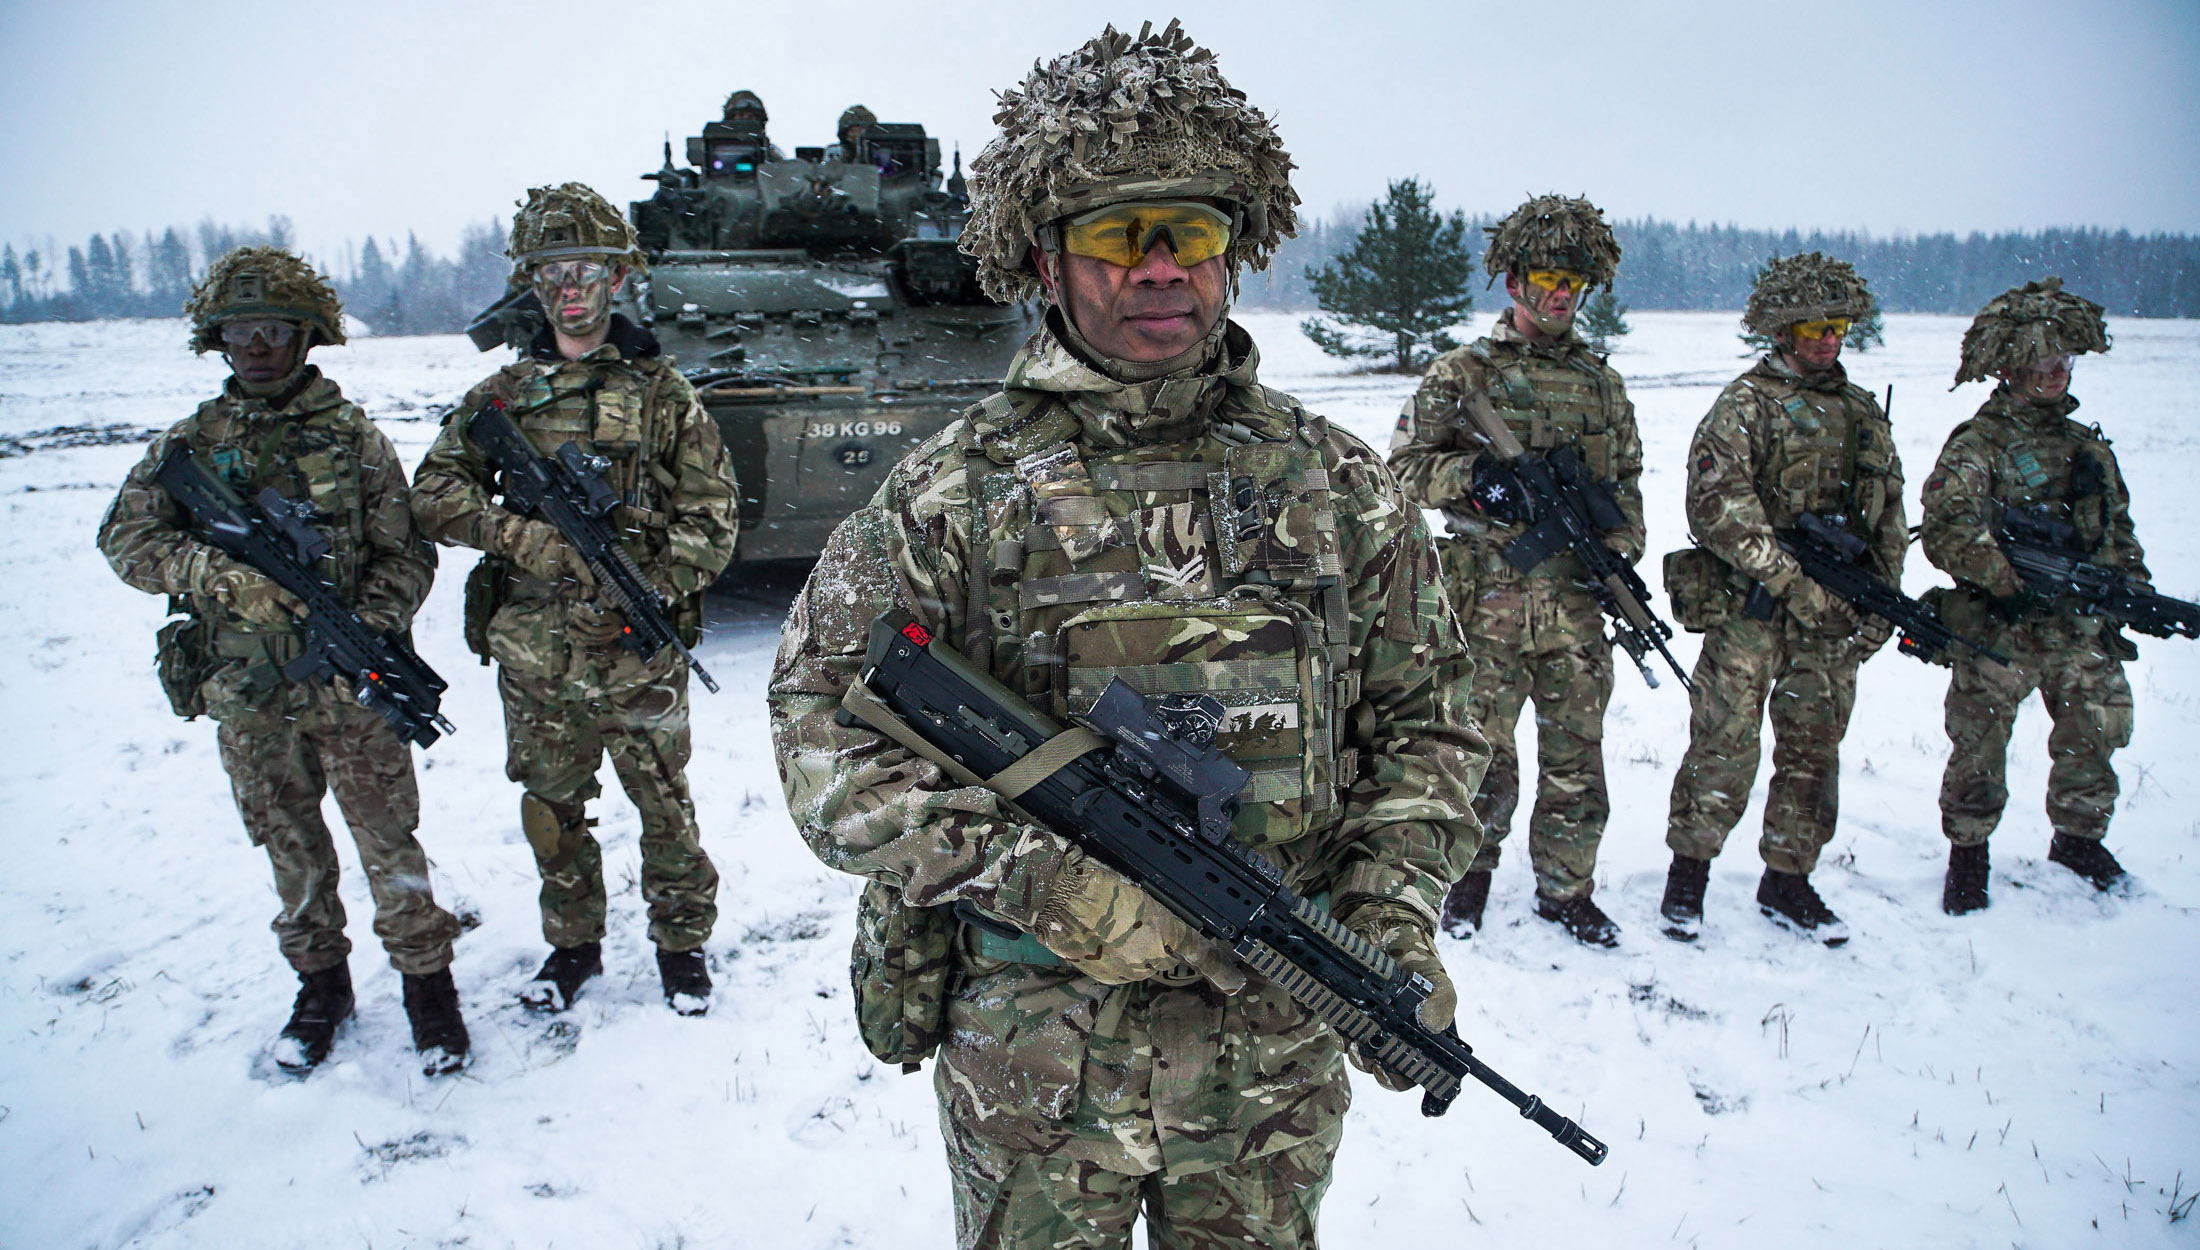 Members of the Royal Welsh Regiment as part of the NATO Enhanced Forward Presence (NATO)